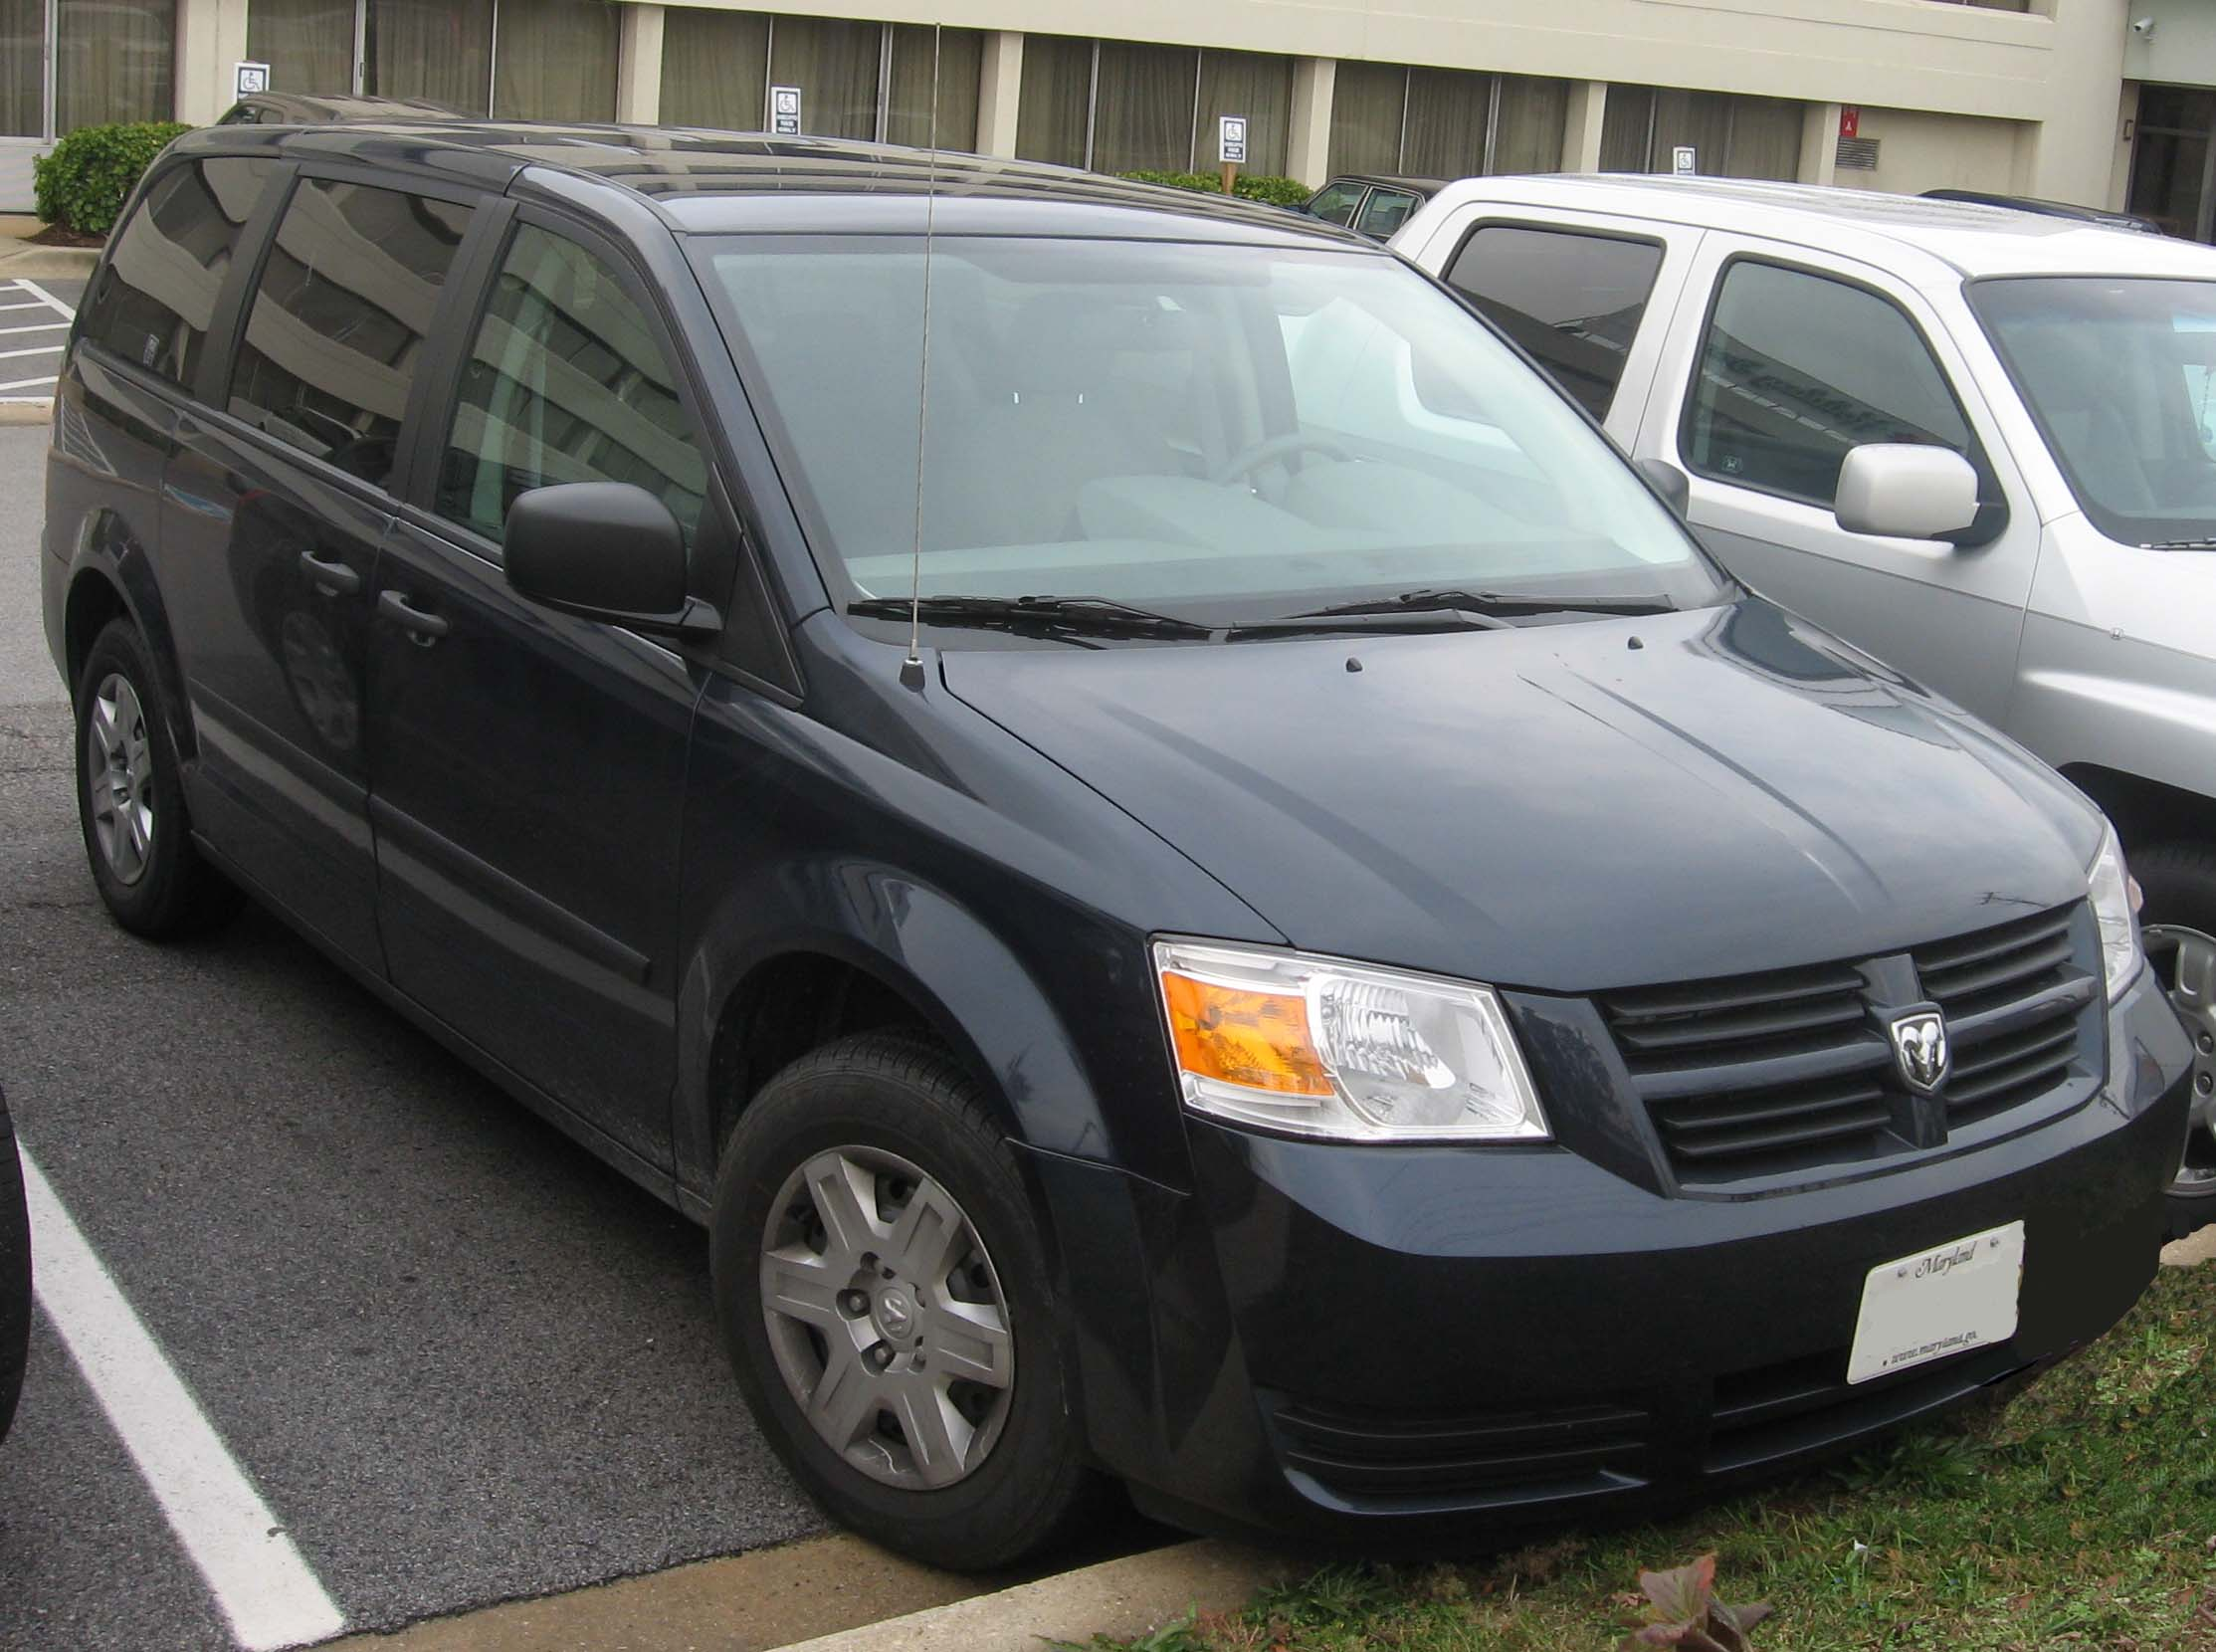 Dodge Caravan For Sale >> File:2008 Dodge Grand Caravan SE.jpg - Wikimedia Commons